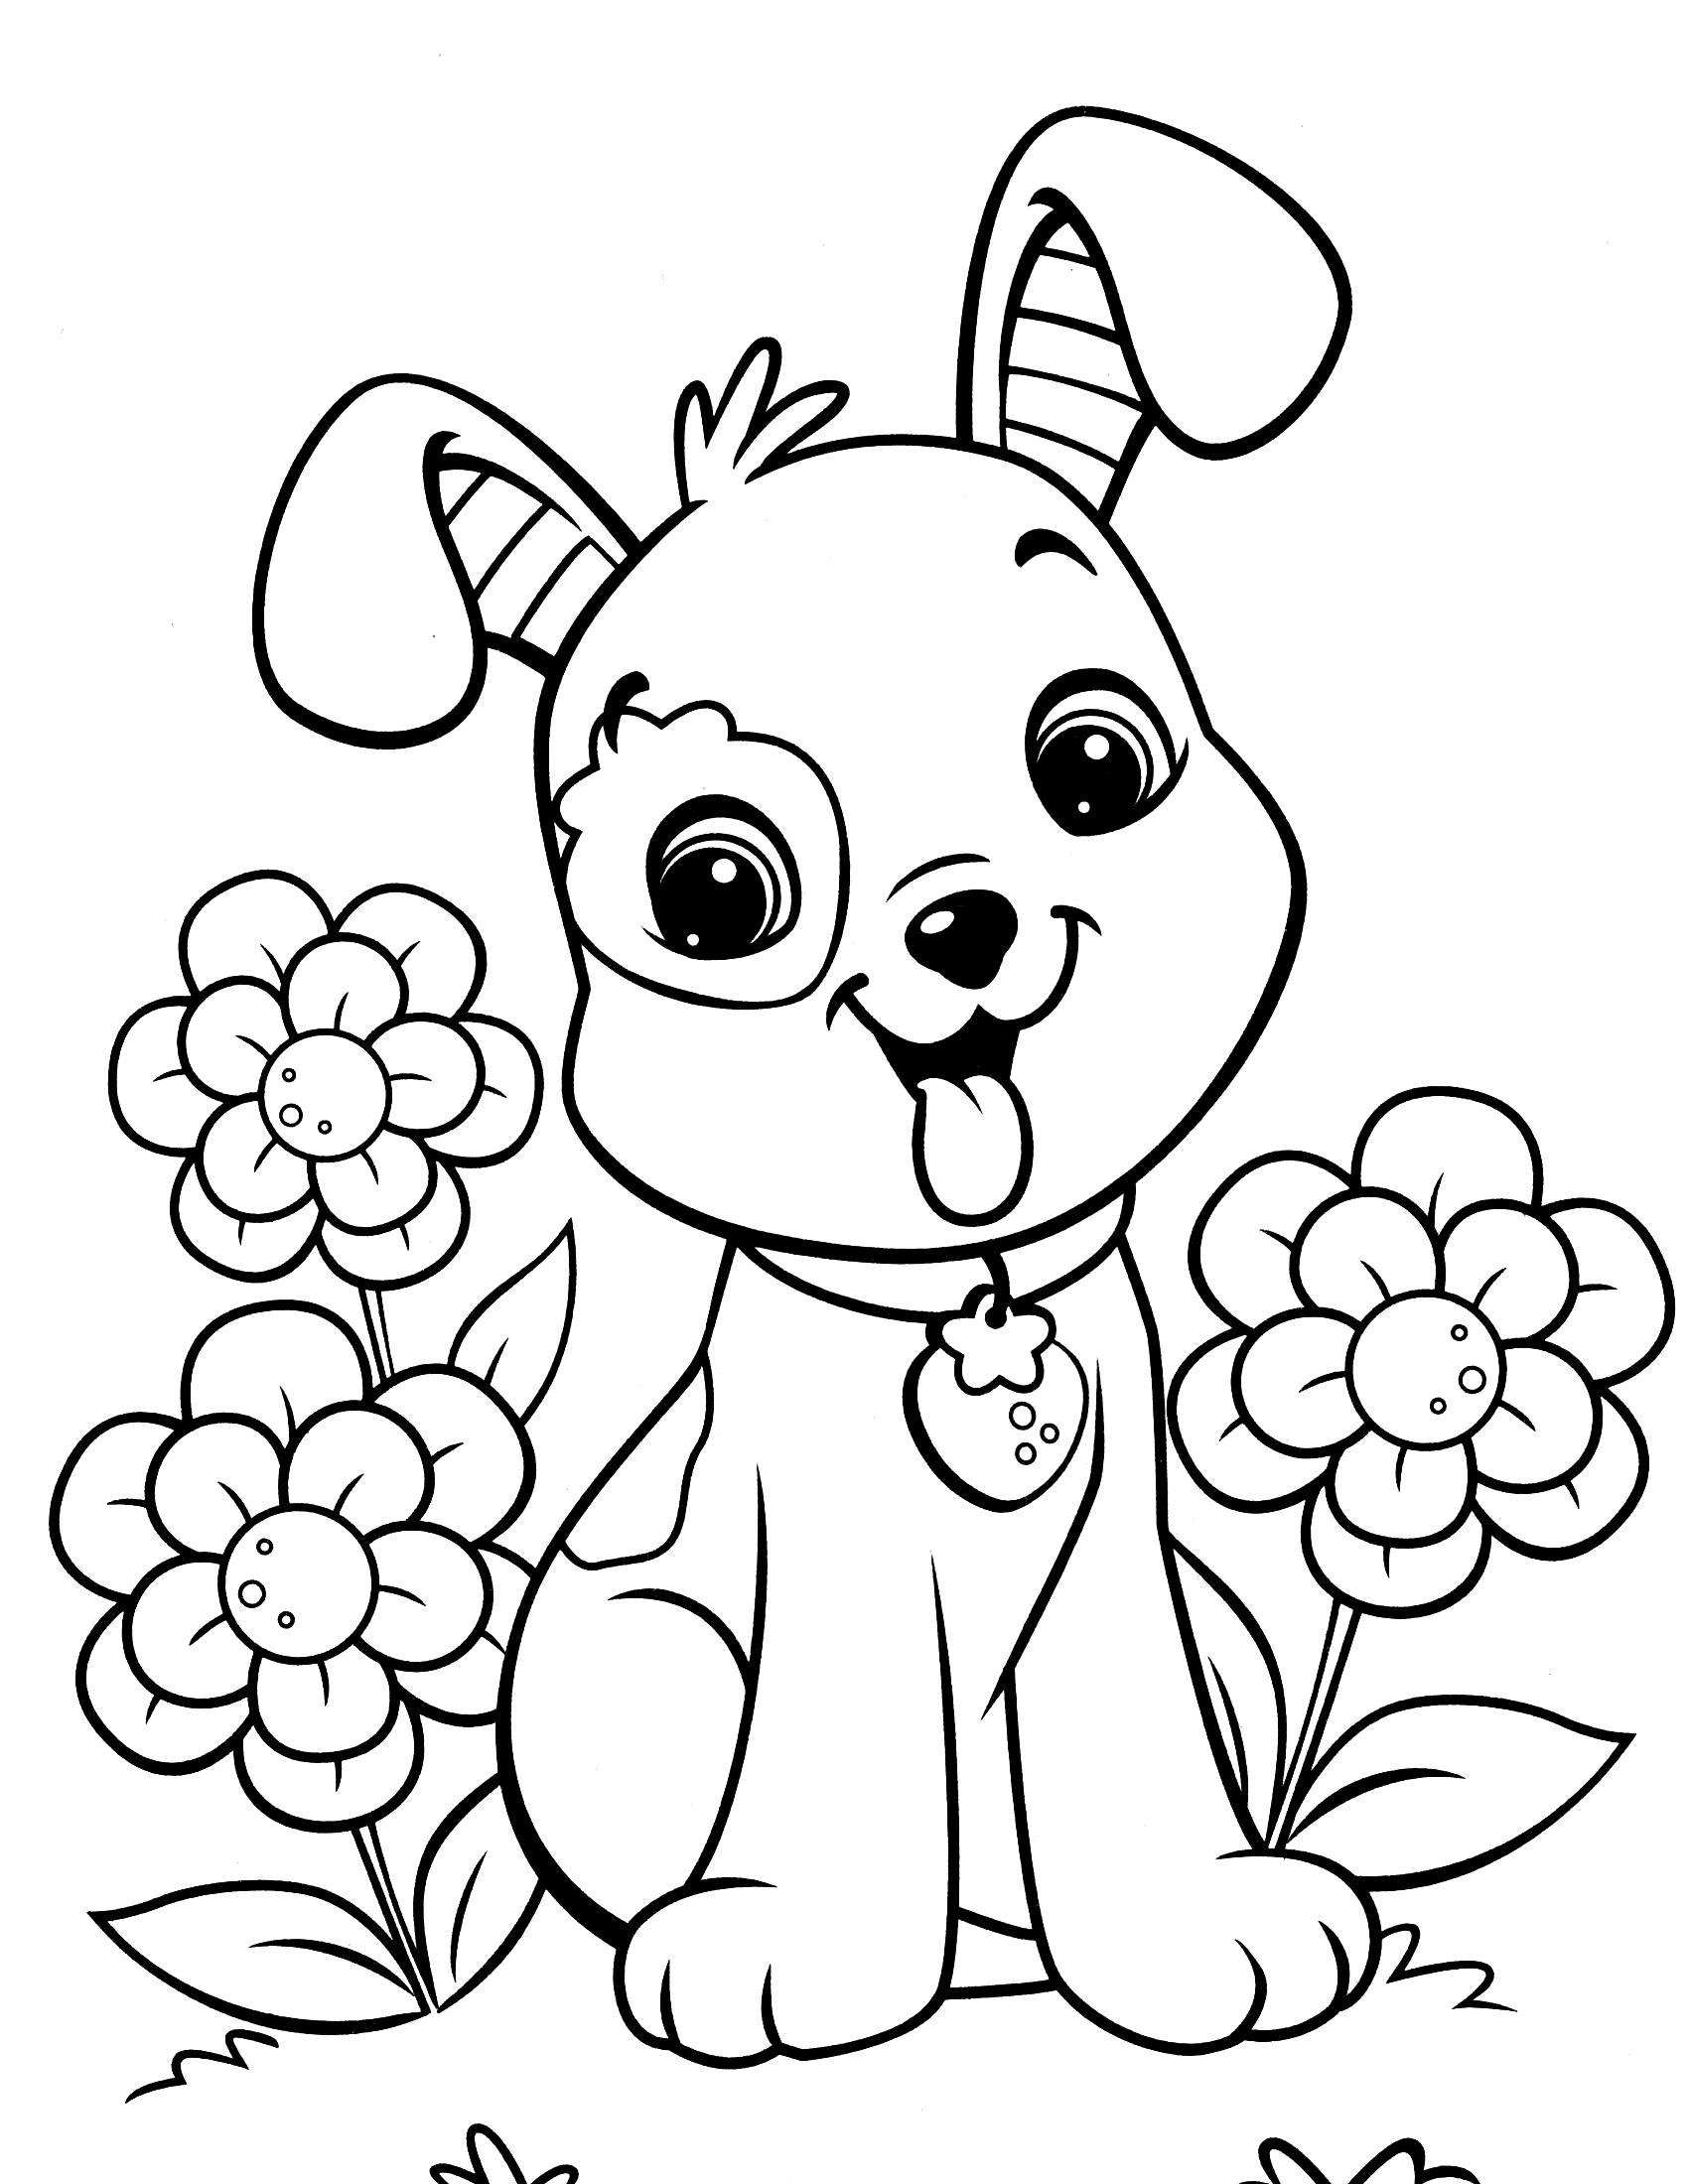 dogs coloring pages printable puppy dog coloring pages to download and print for free pages printable coloring dogs